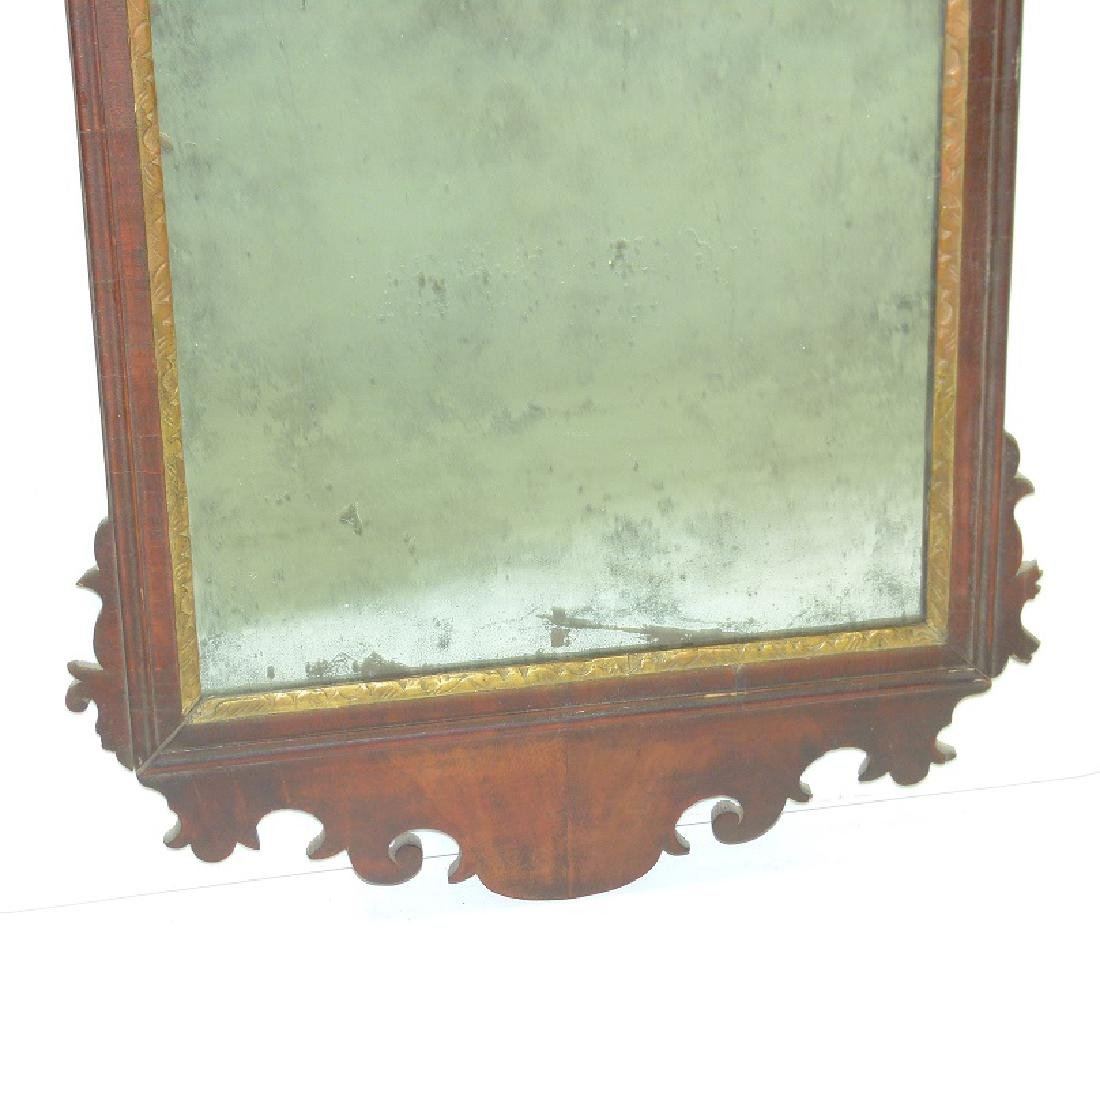 QUEEN ANNE MAHOGANY LOOKING GLASS, 18TH C. - 3